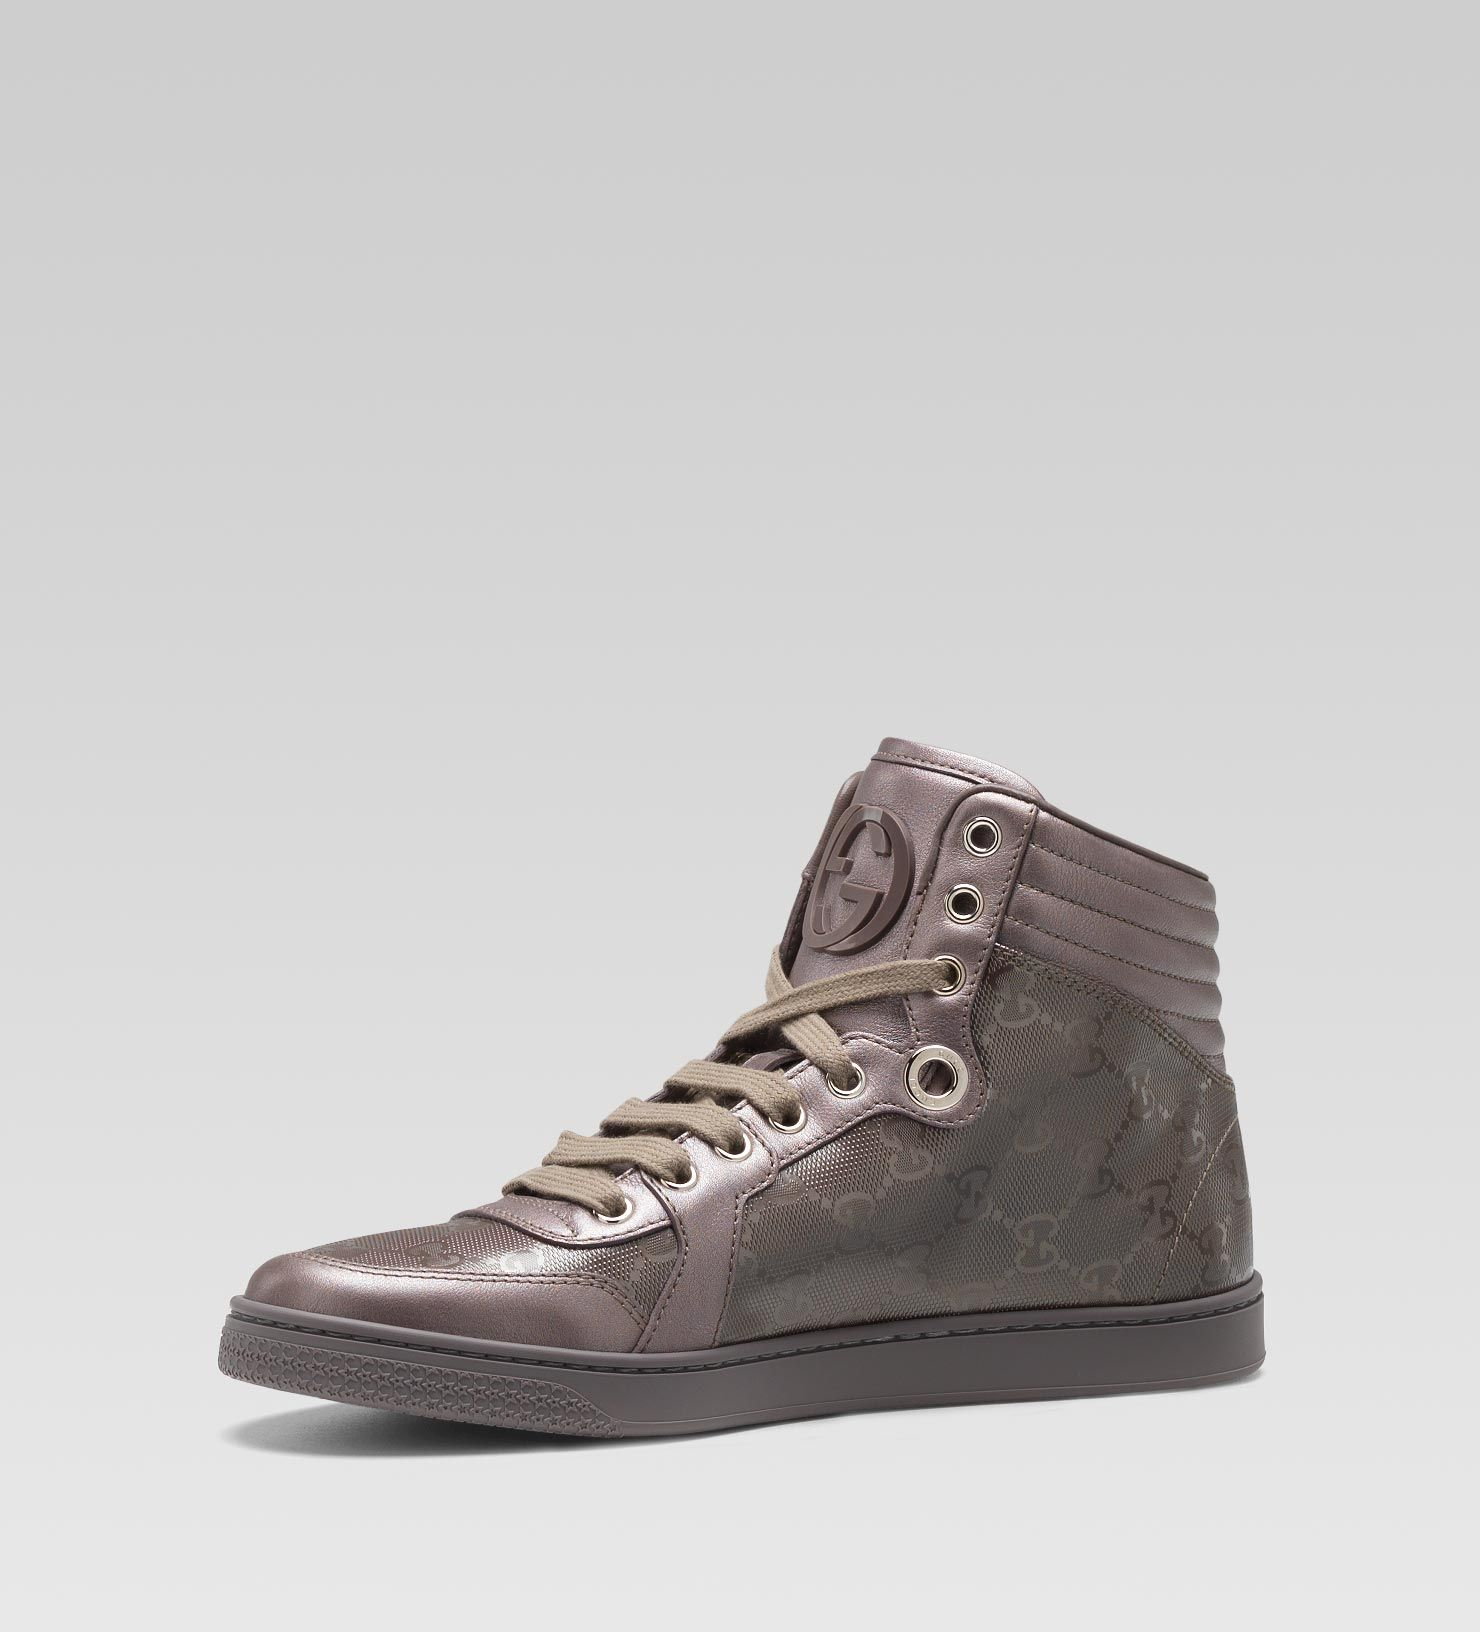 Gucci Woman High Tops | Gucci Womenu0027s U0027codau0027 High Top Sneaker | Sneaker